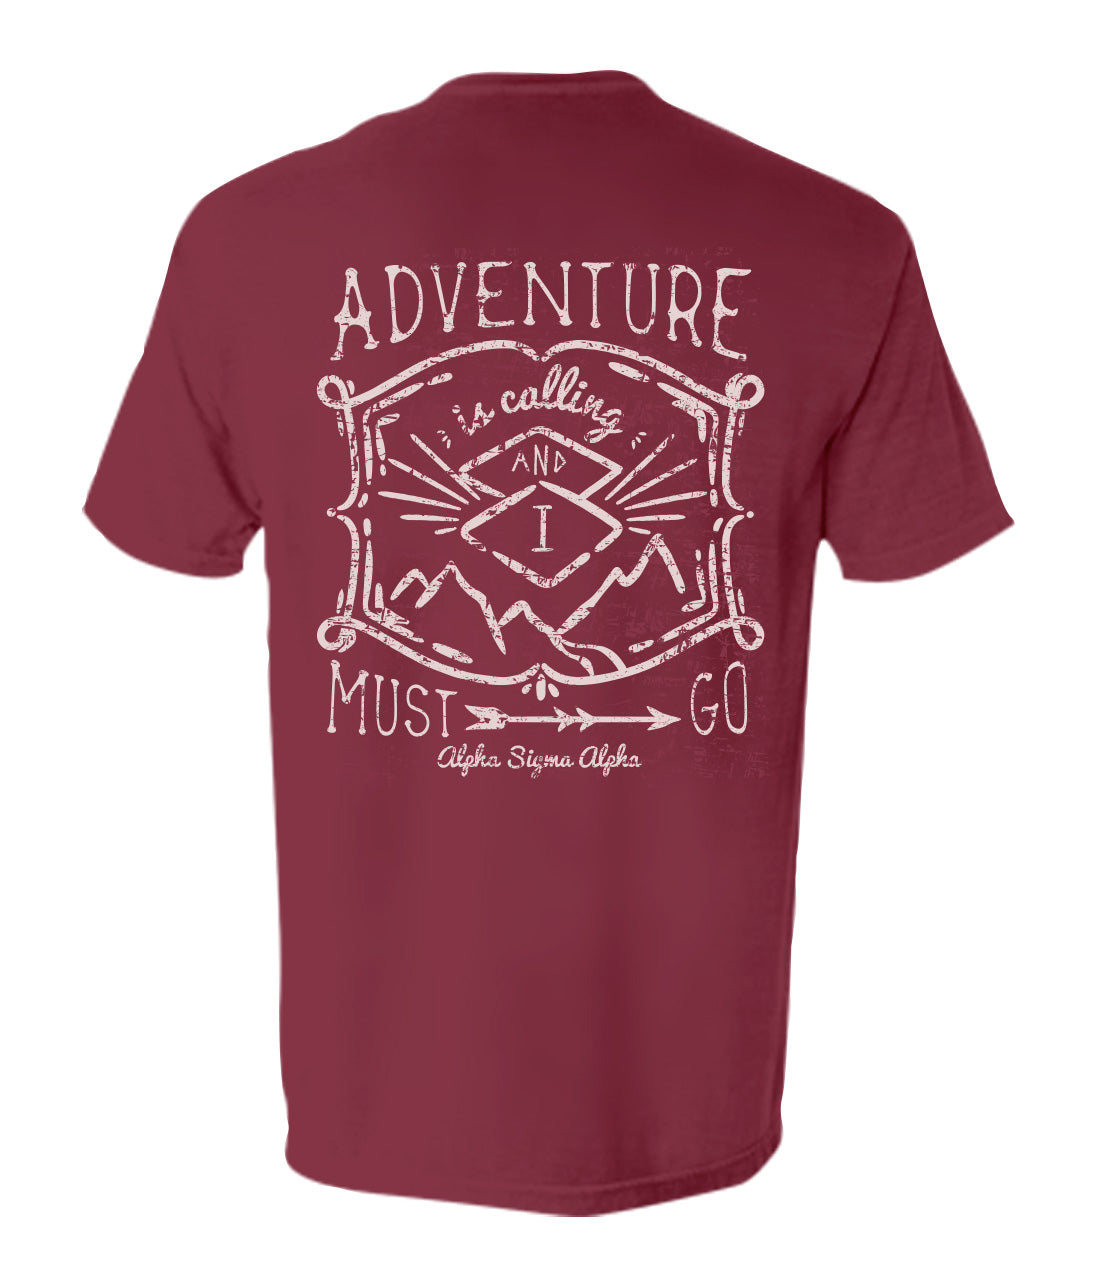 LAST CHANCE | 154299 | Alpha Sigma Alpha Adventure